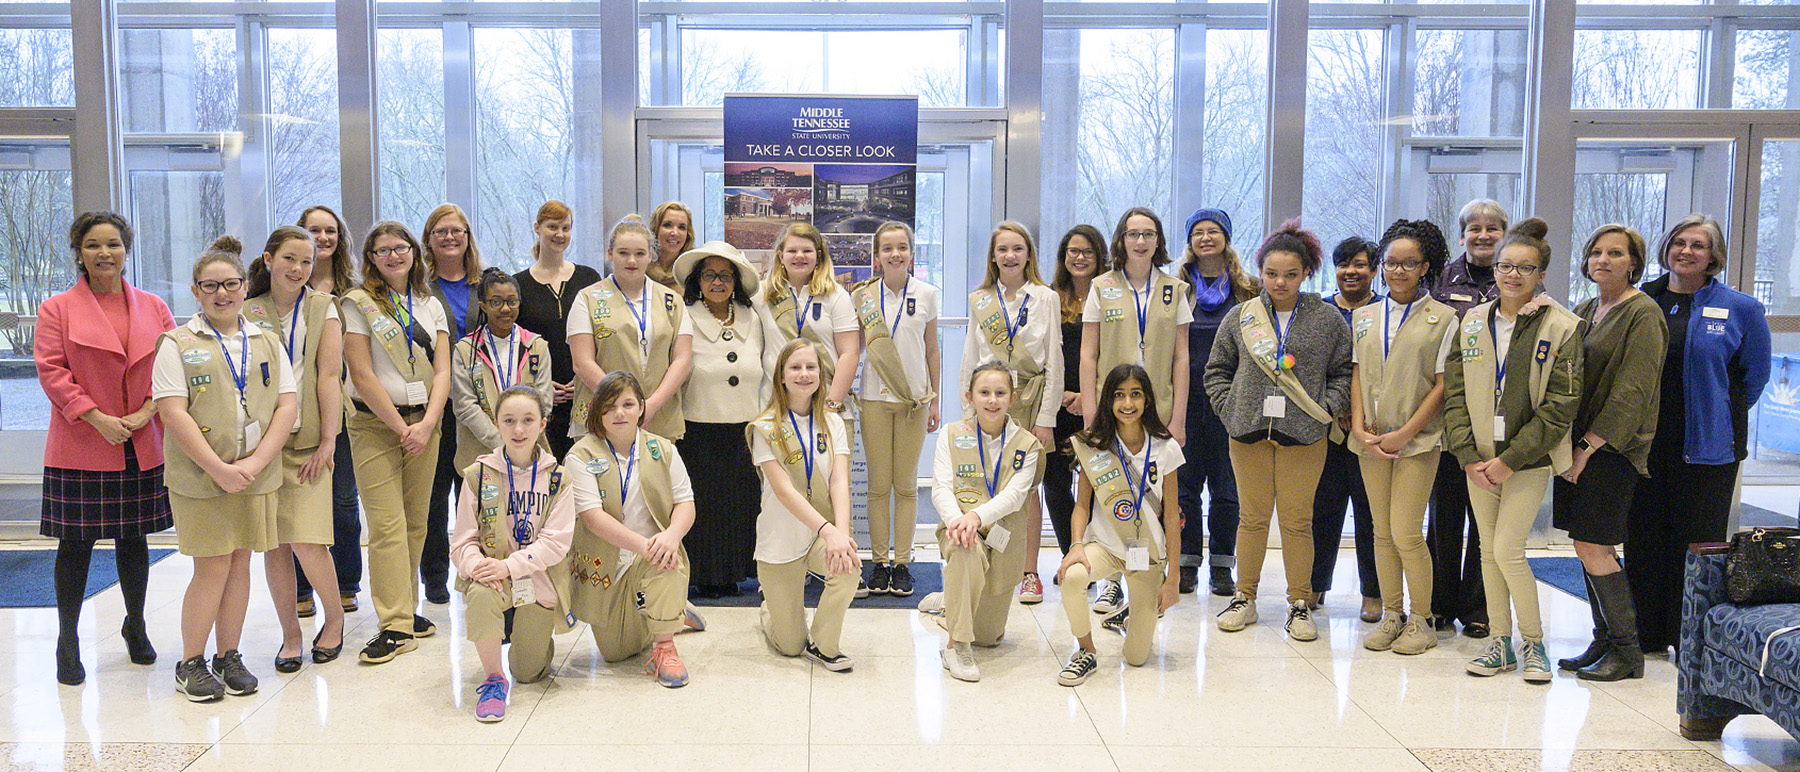 MTSU welcomes Girl Scouts to campus for career mentoring